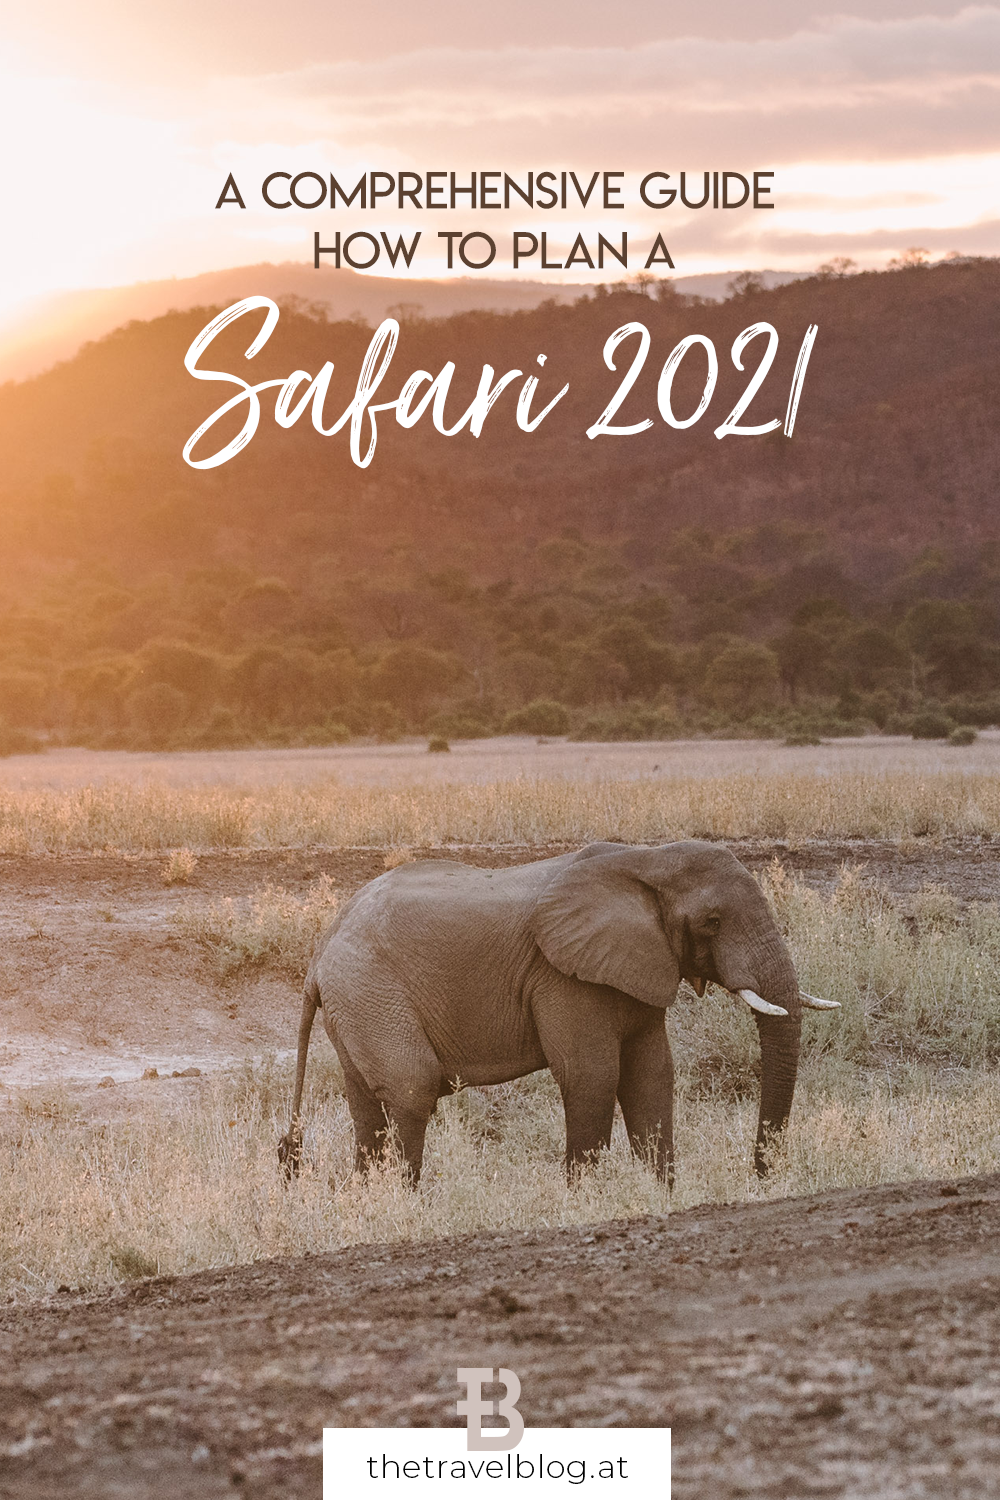 How to plan a safari in 2021 - a comprehensive guide to safari trips during COVID-19